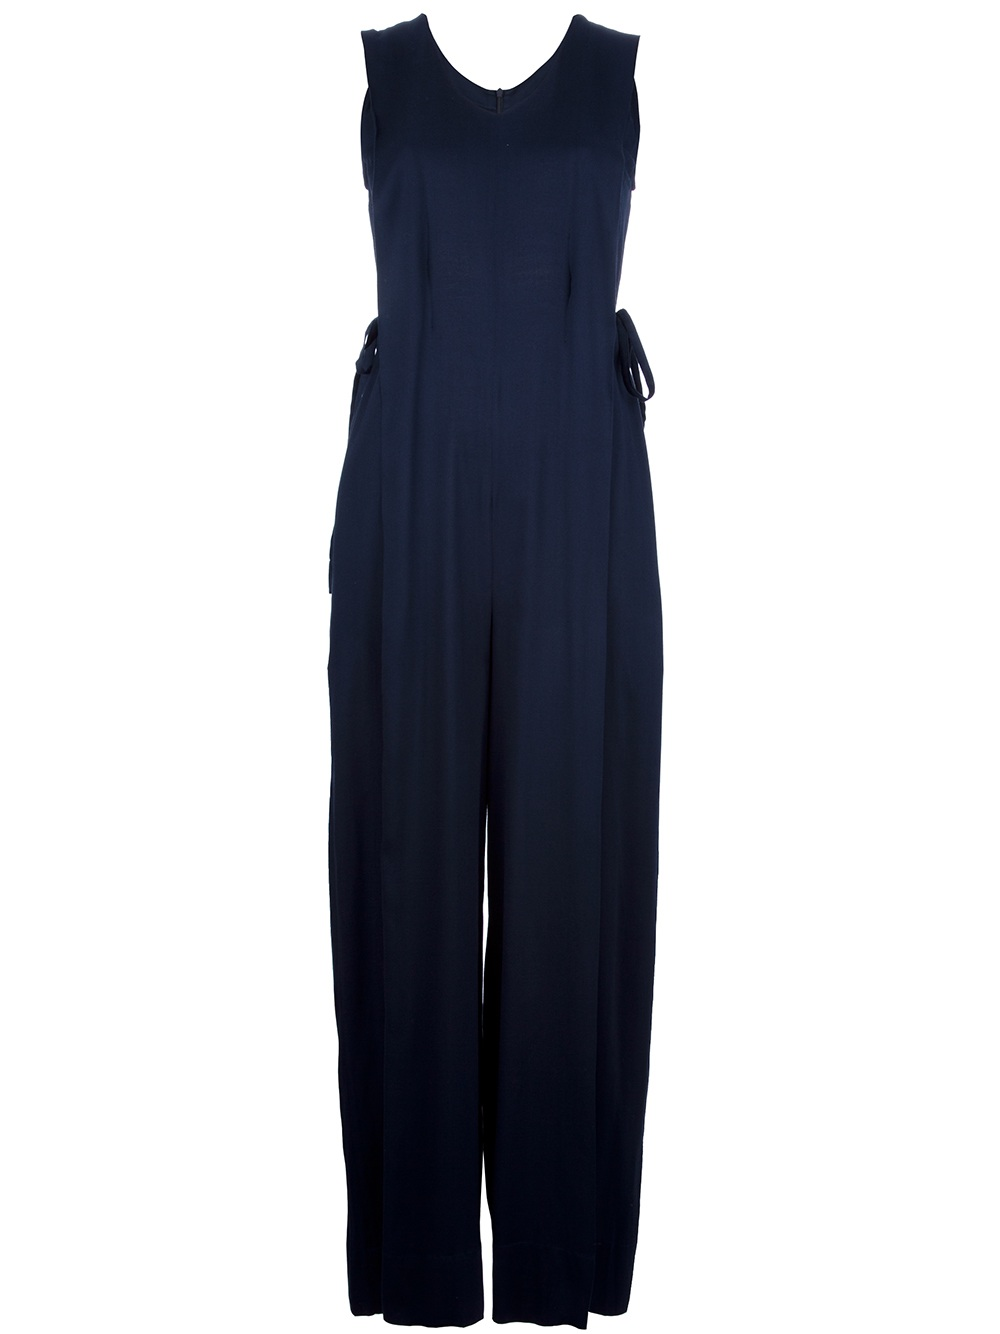 Innovative WOMENS CLOTHING ALL IN ONE SEXY CHIFFON NAVY BLUE JUMPSUIT WITH HALTER